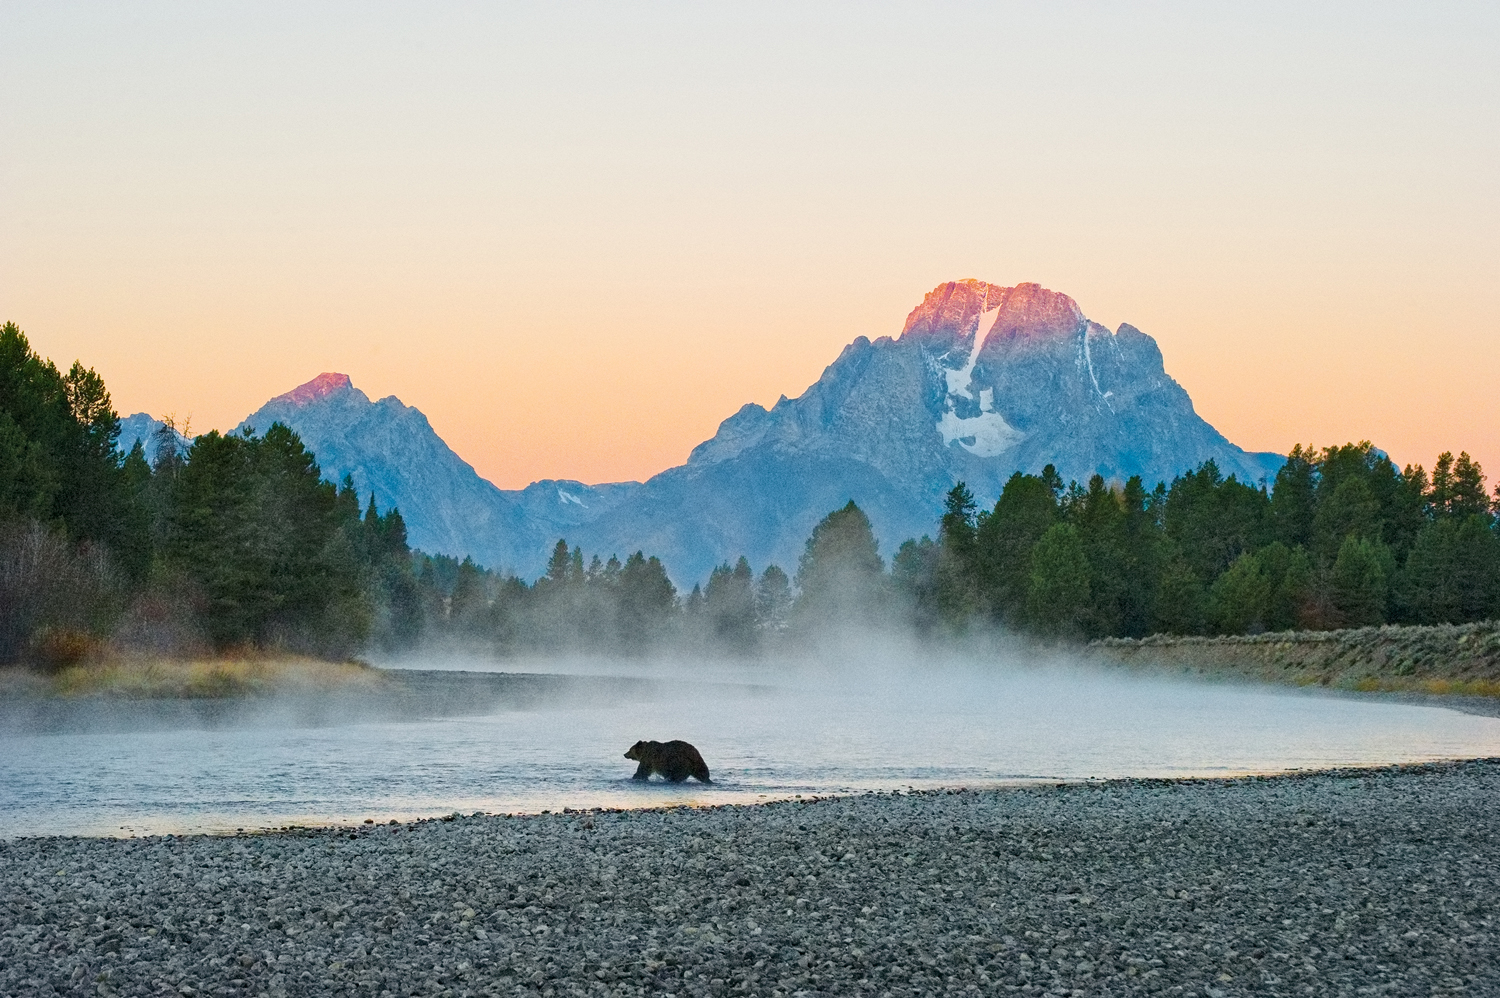 Grizzly bear crosses the Snake River as first Light touches Mount Moran in Grand Teton National Park. Earthjustice litigation anchored in the Endangered Species Act has enabled the restoration of protections for Yellowstone's grizzly bears.